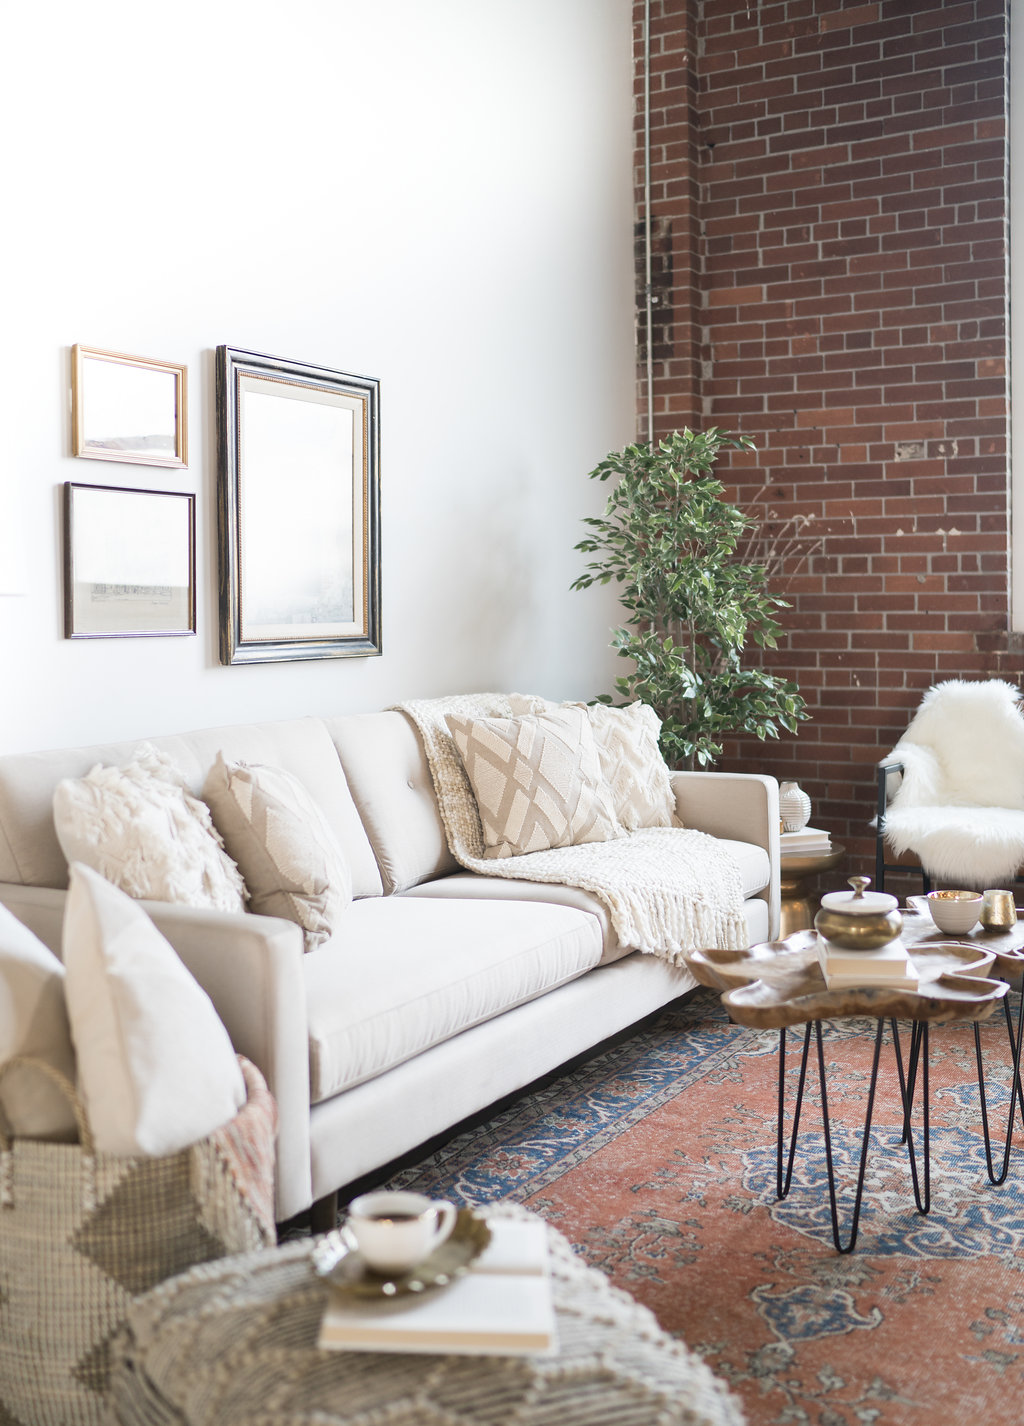 transition your space for fall